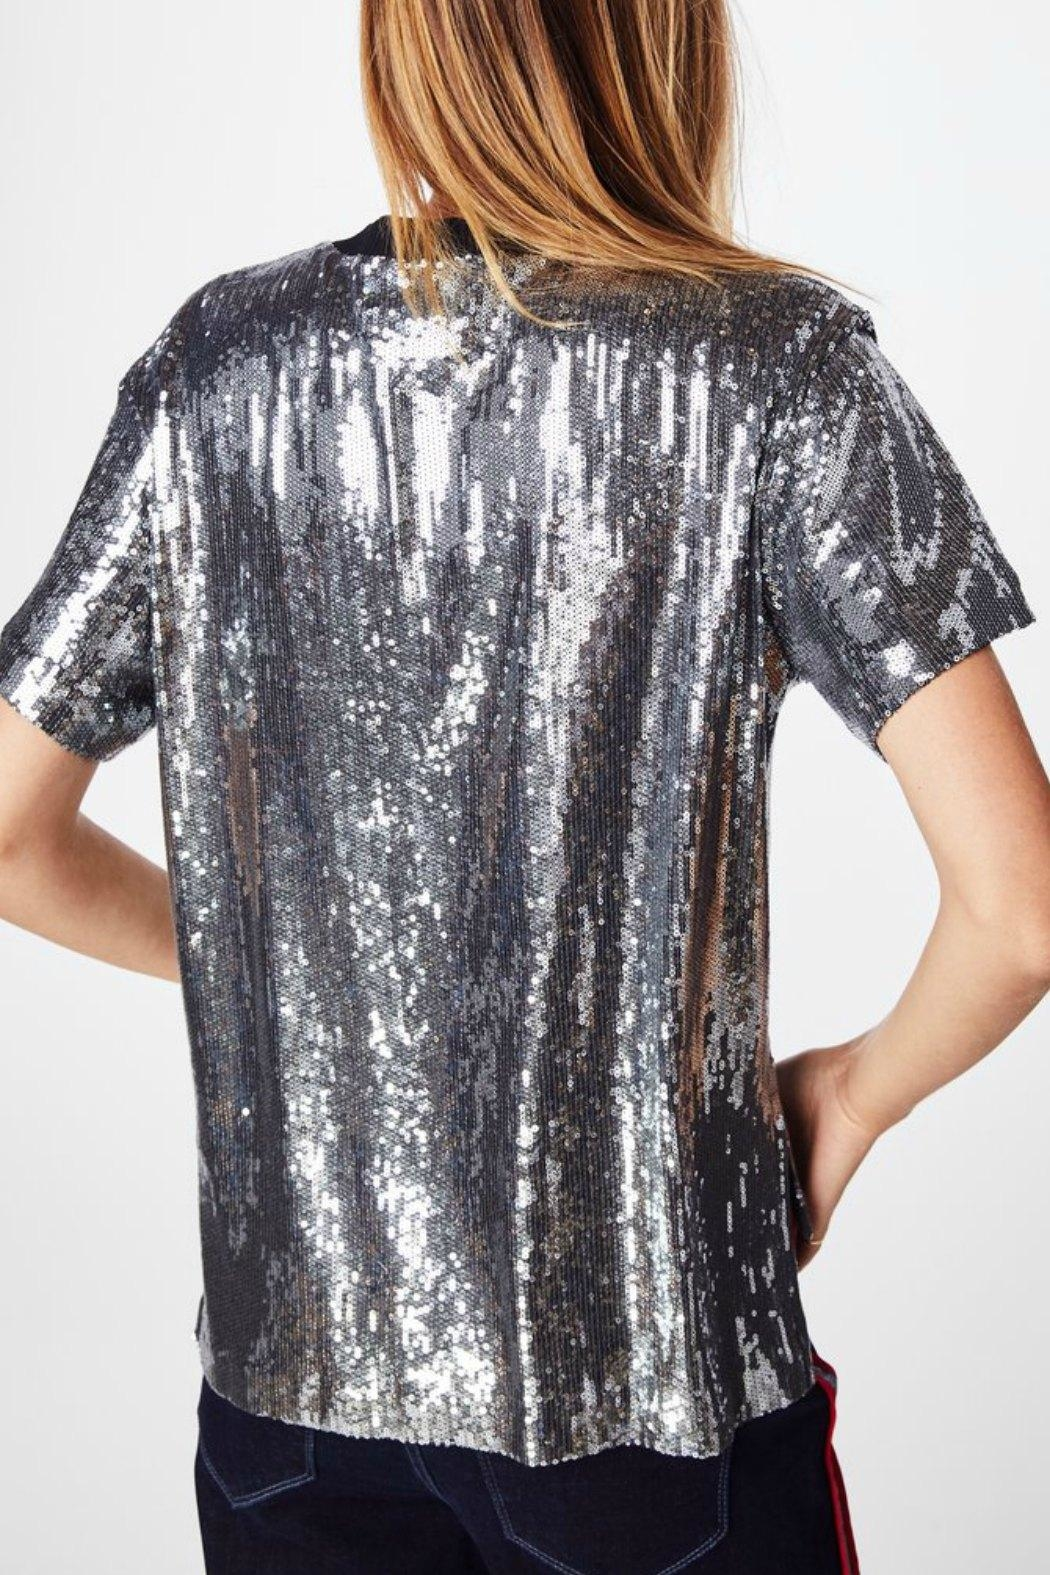 Nicole Miller Sequined Tee Shirt - Front Full Image